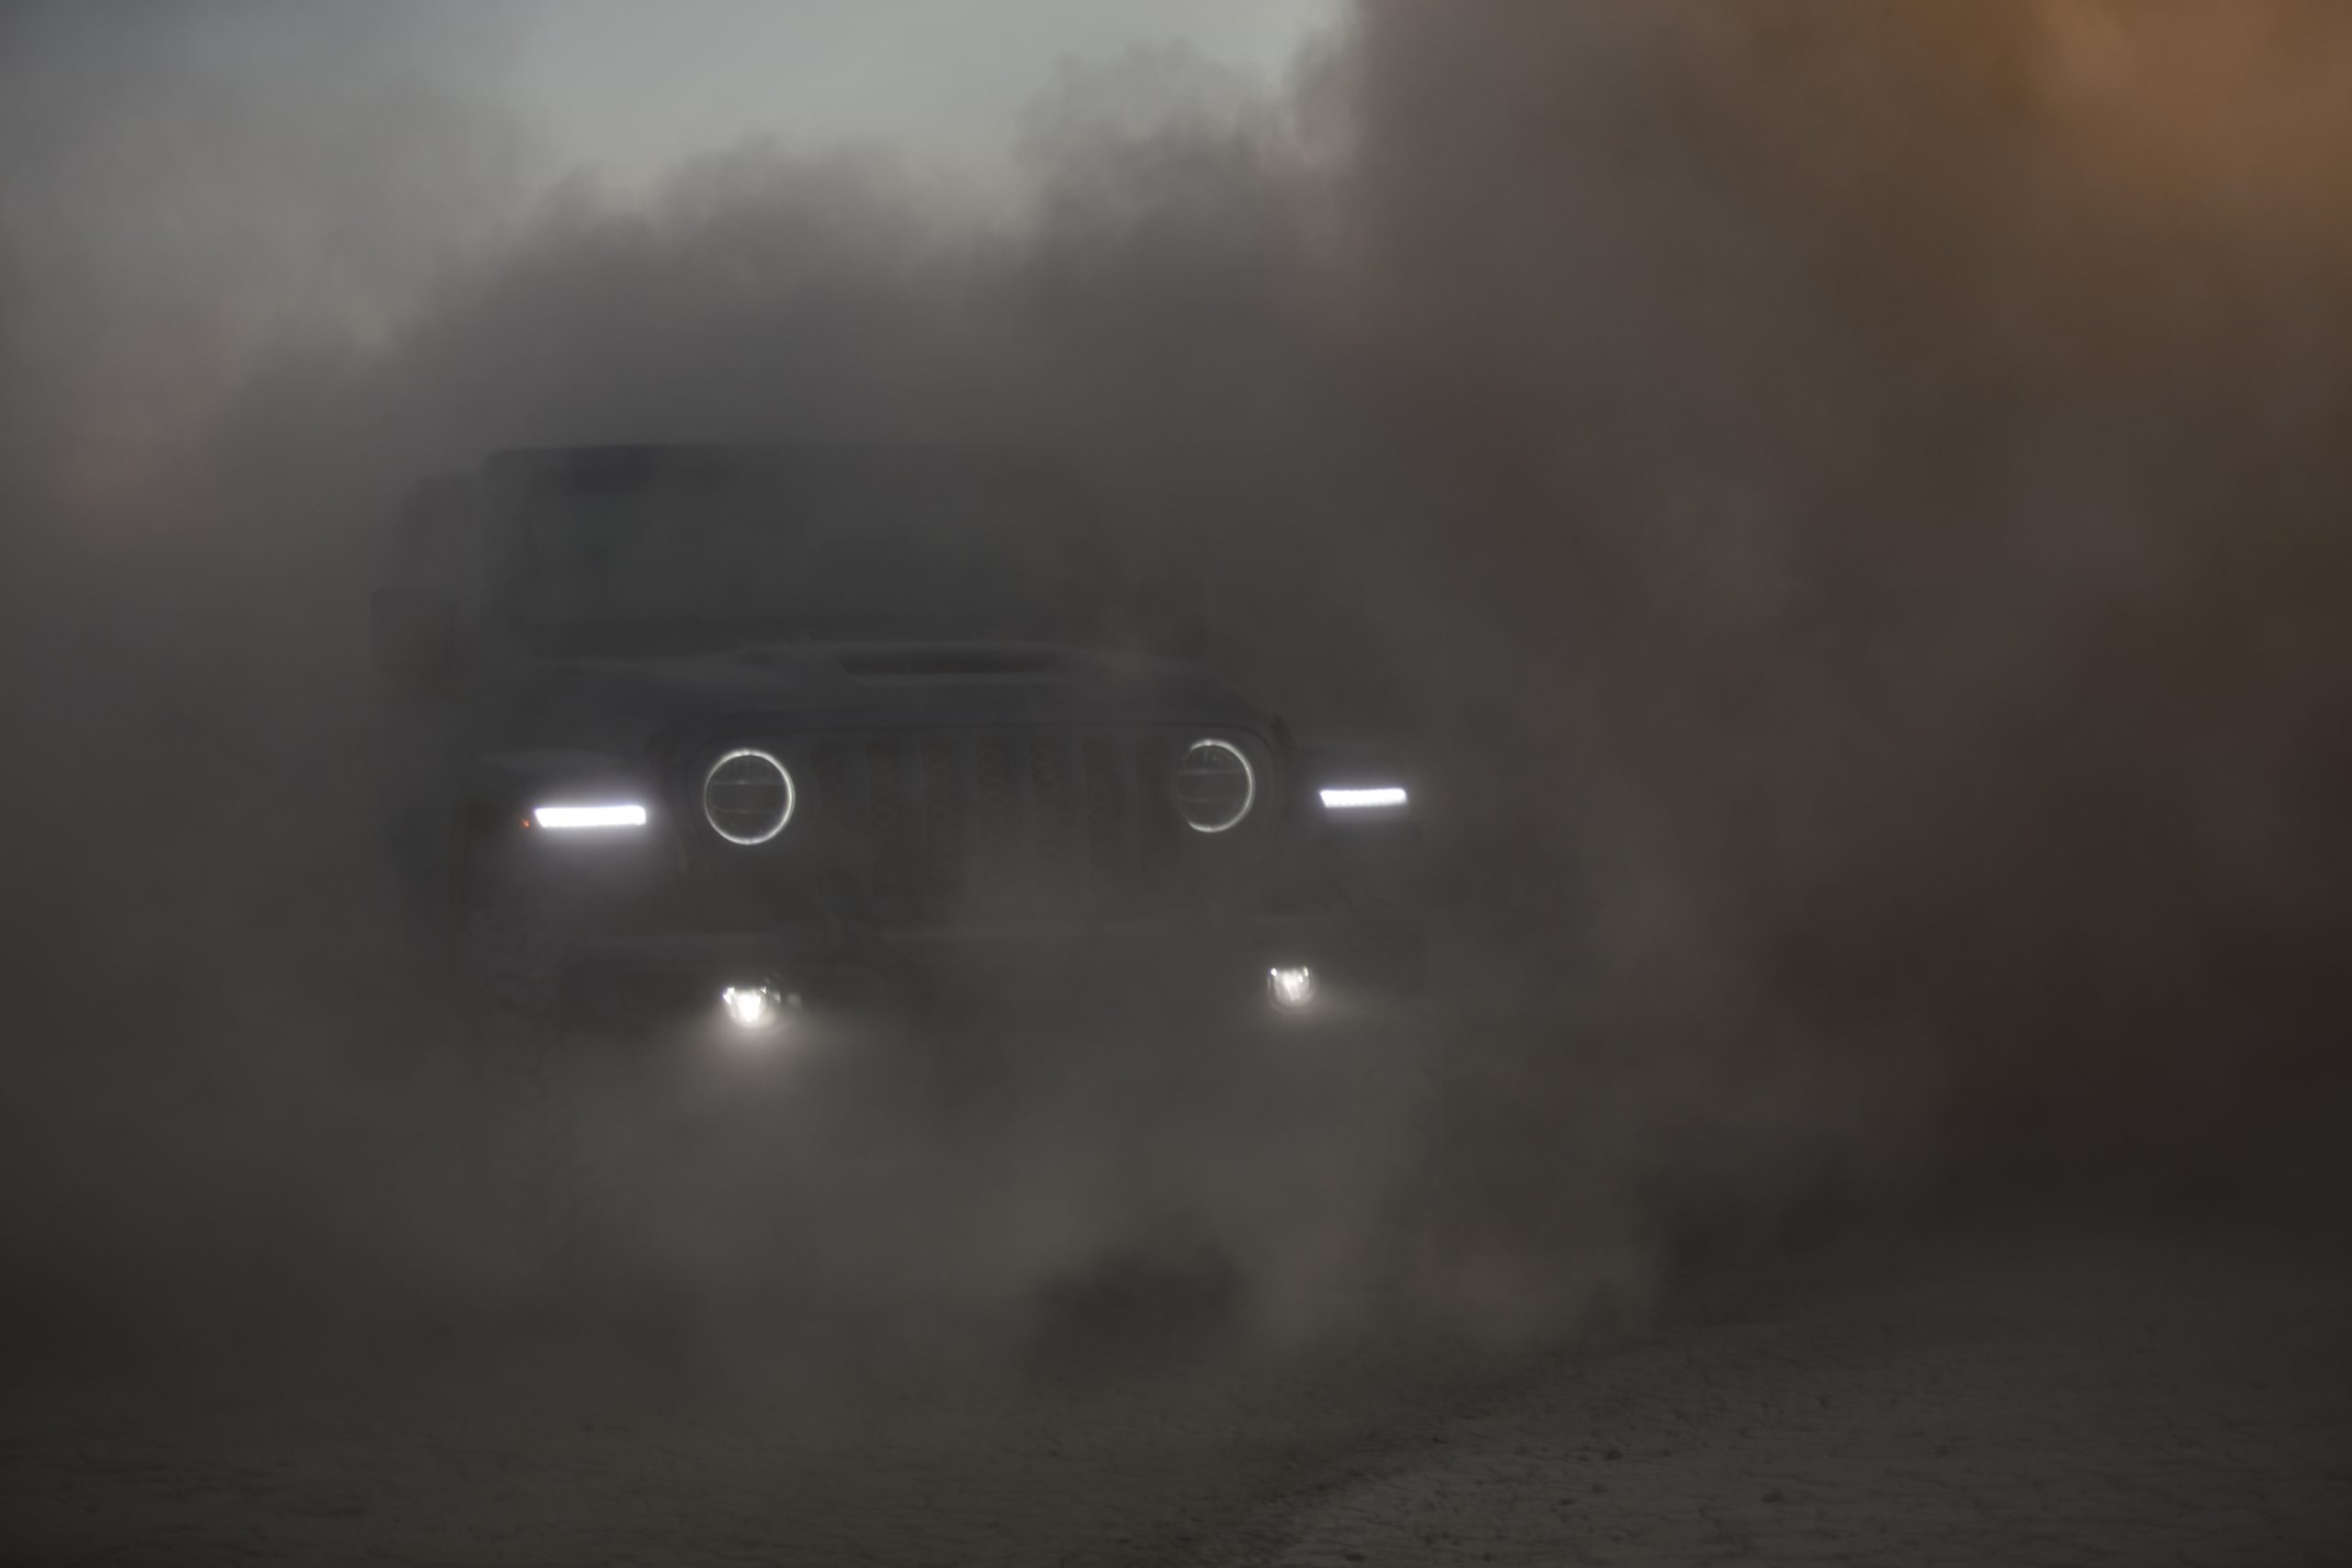 2021 Jeep Wrangler Rubicon 392 gray through dust clouds